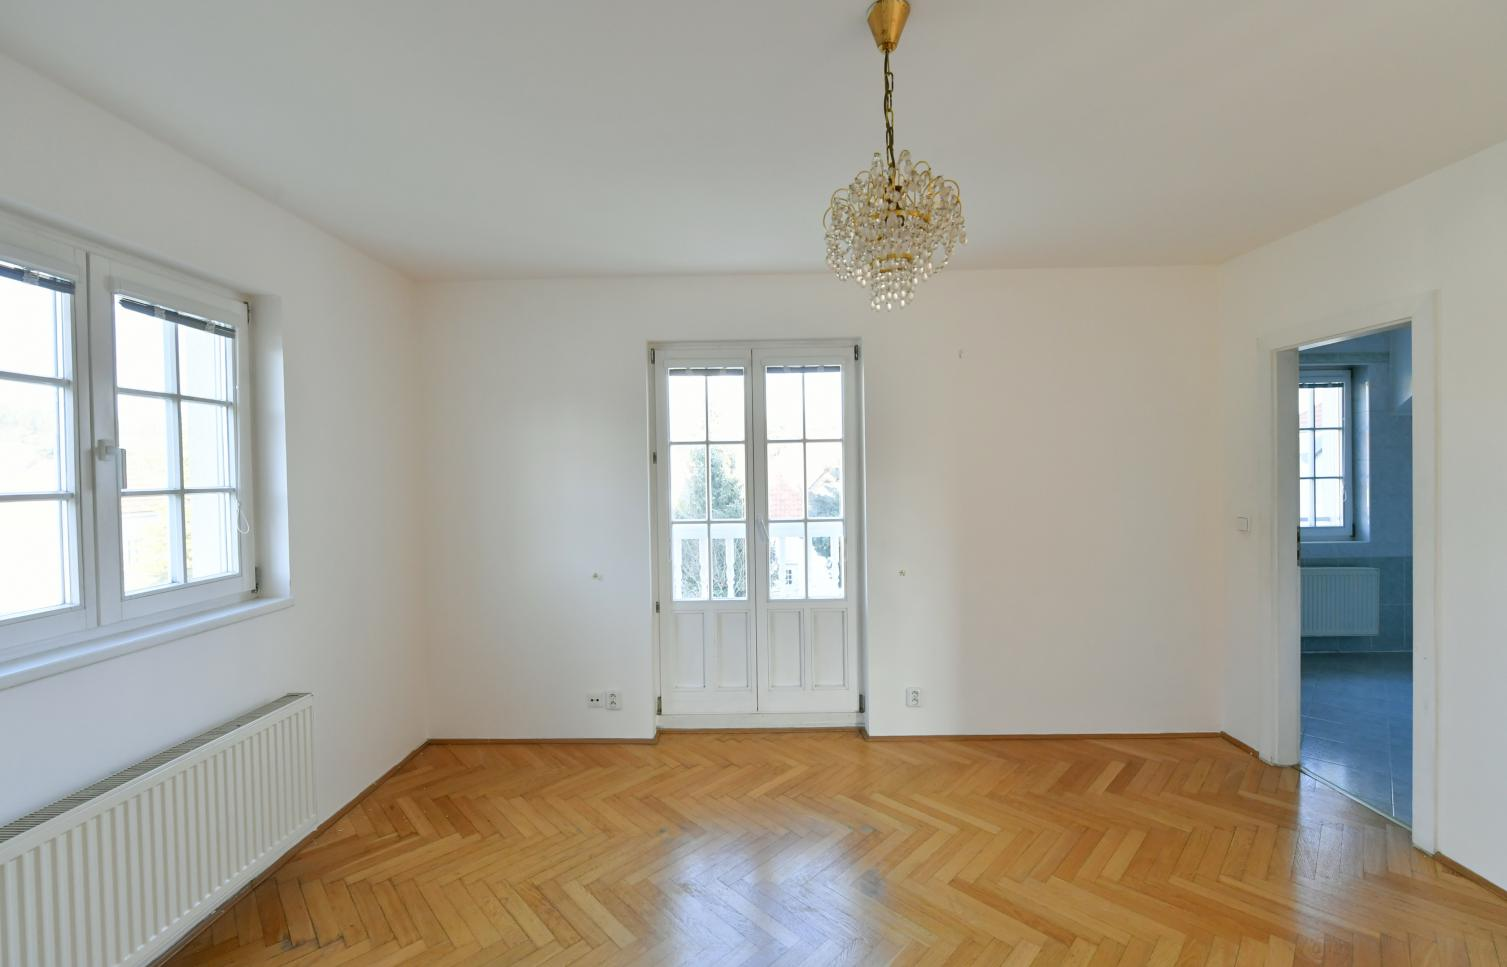 TOWNHOUSE FOR RENT, street K Parku, Praha-Nebušice